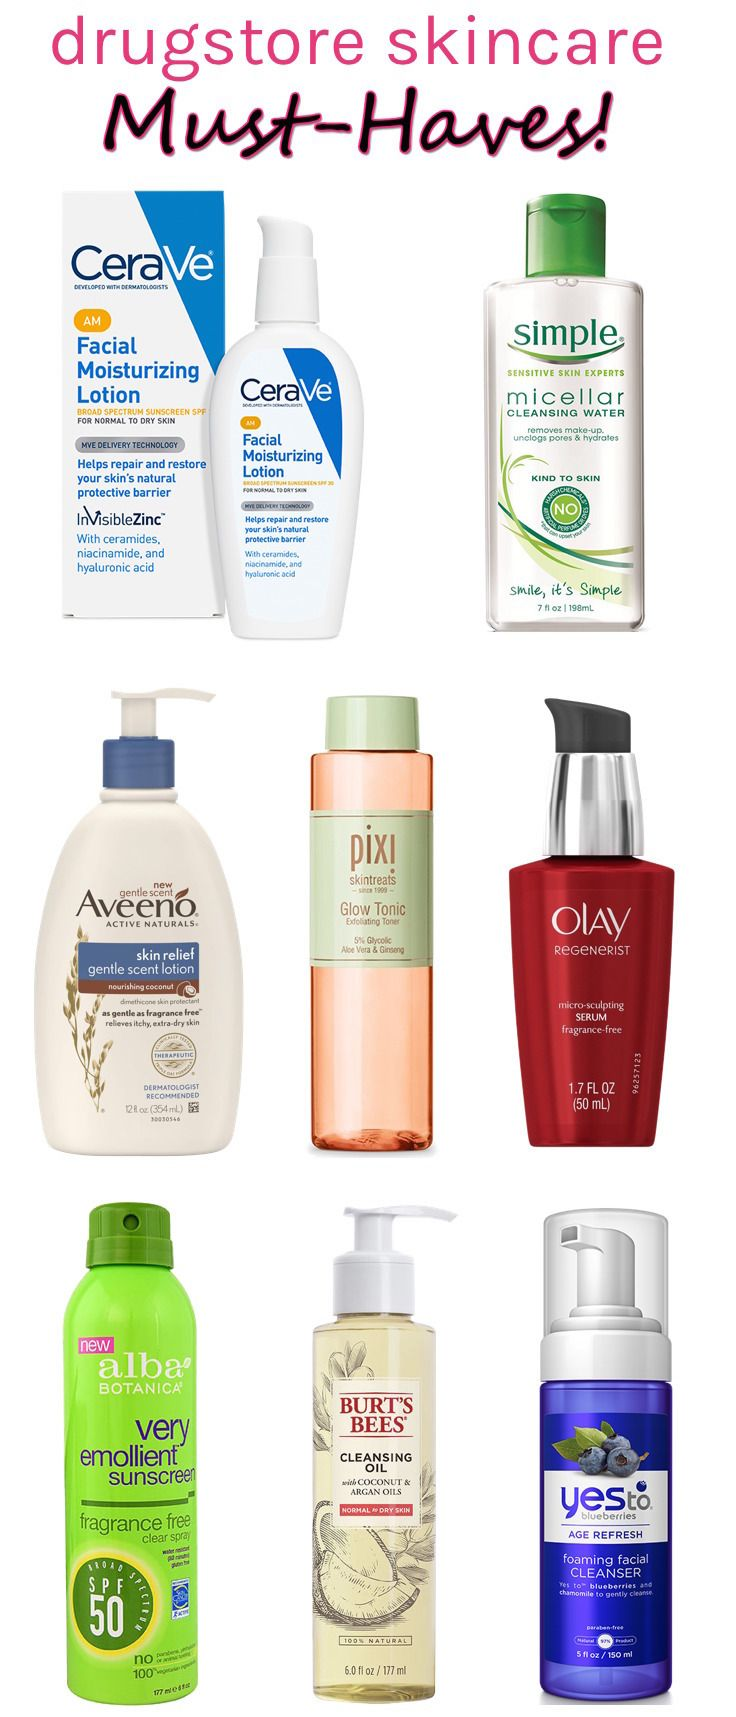 Looking for spectacular skincare finds at affordable prices? Click through for 8 tried & tested drugstore skincare must-haves that clock in at less than $20!